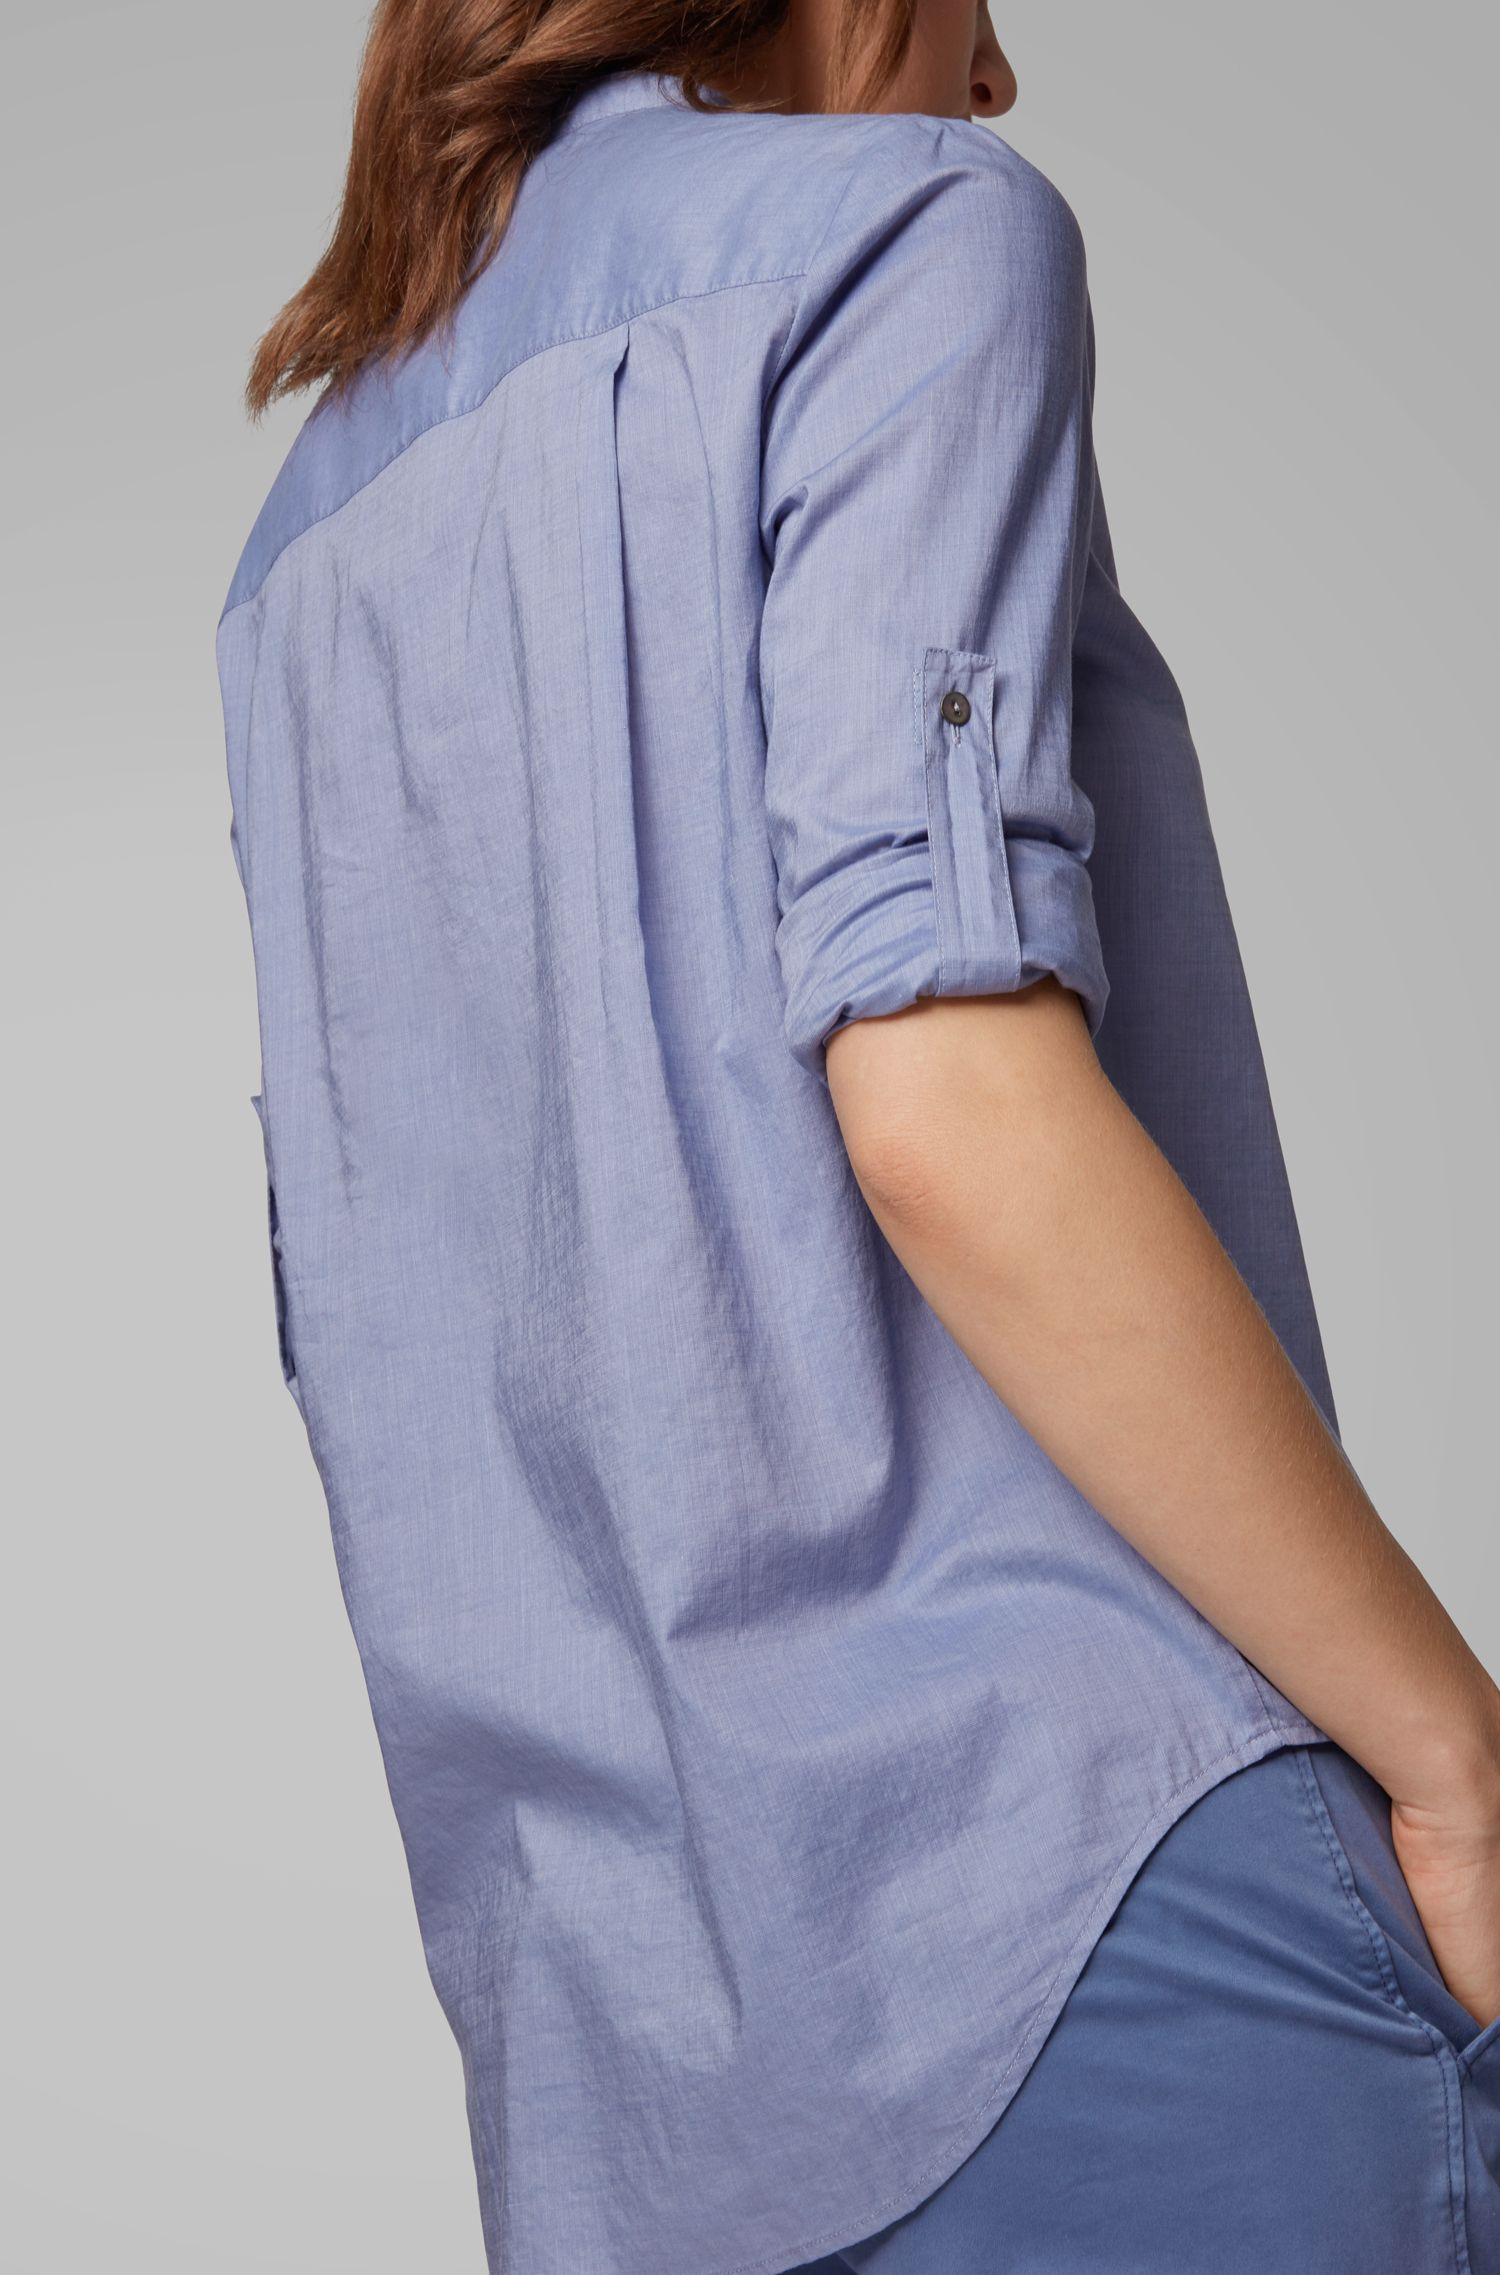 Relaxed-Fit Bluse aus Baumwoll-Mix, Hellblau